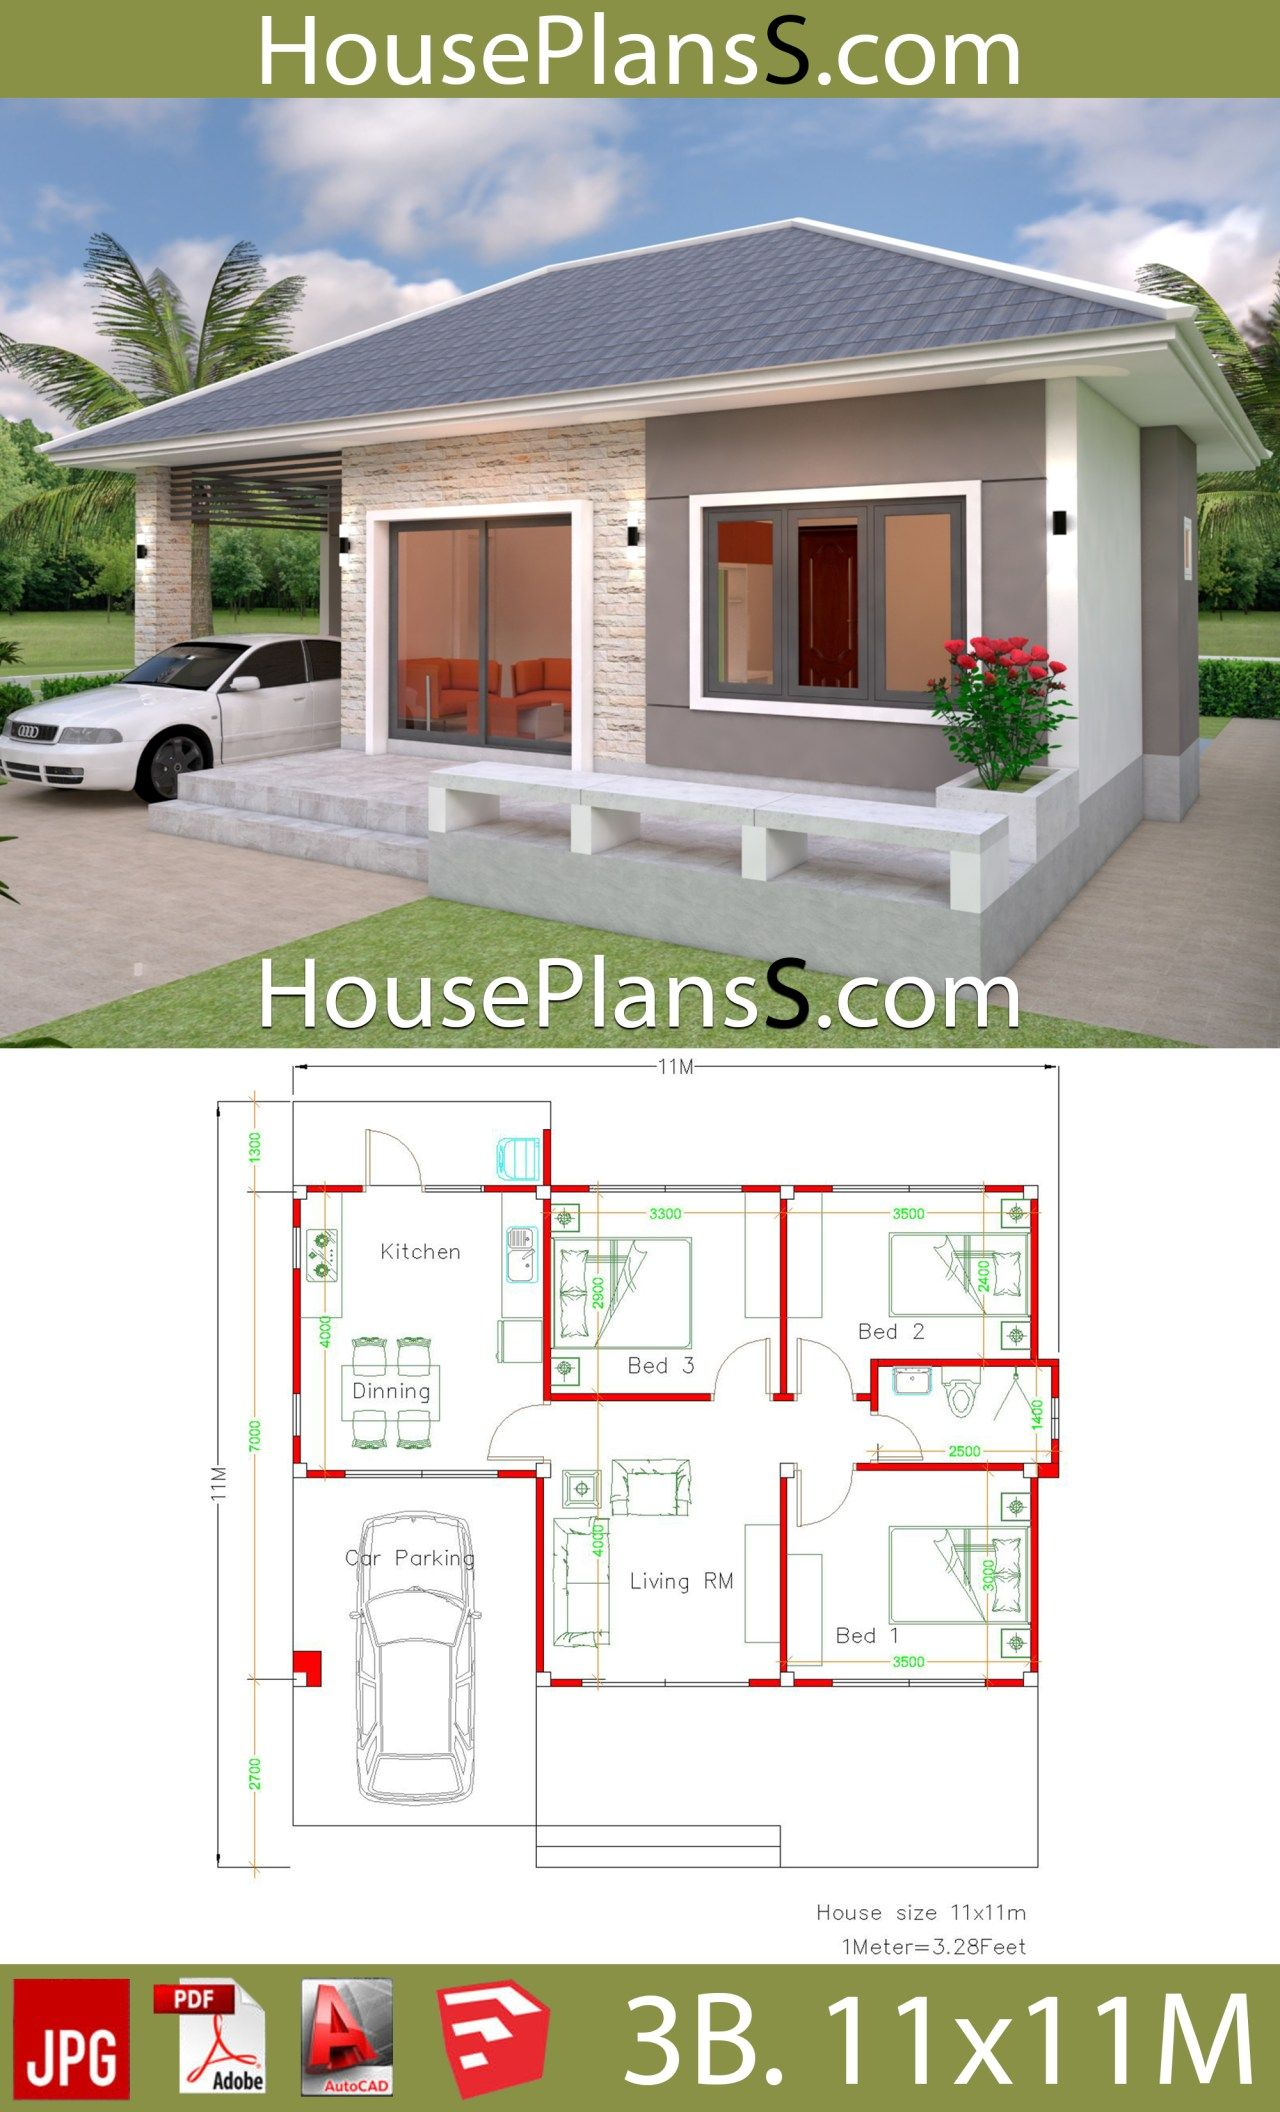 Simple House Design Plans 11x11 With 3 Bedrooms Full Plans House Plans Sam Small House Design Plans Simple House Home Design Plans